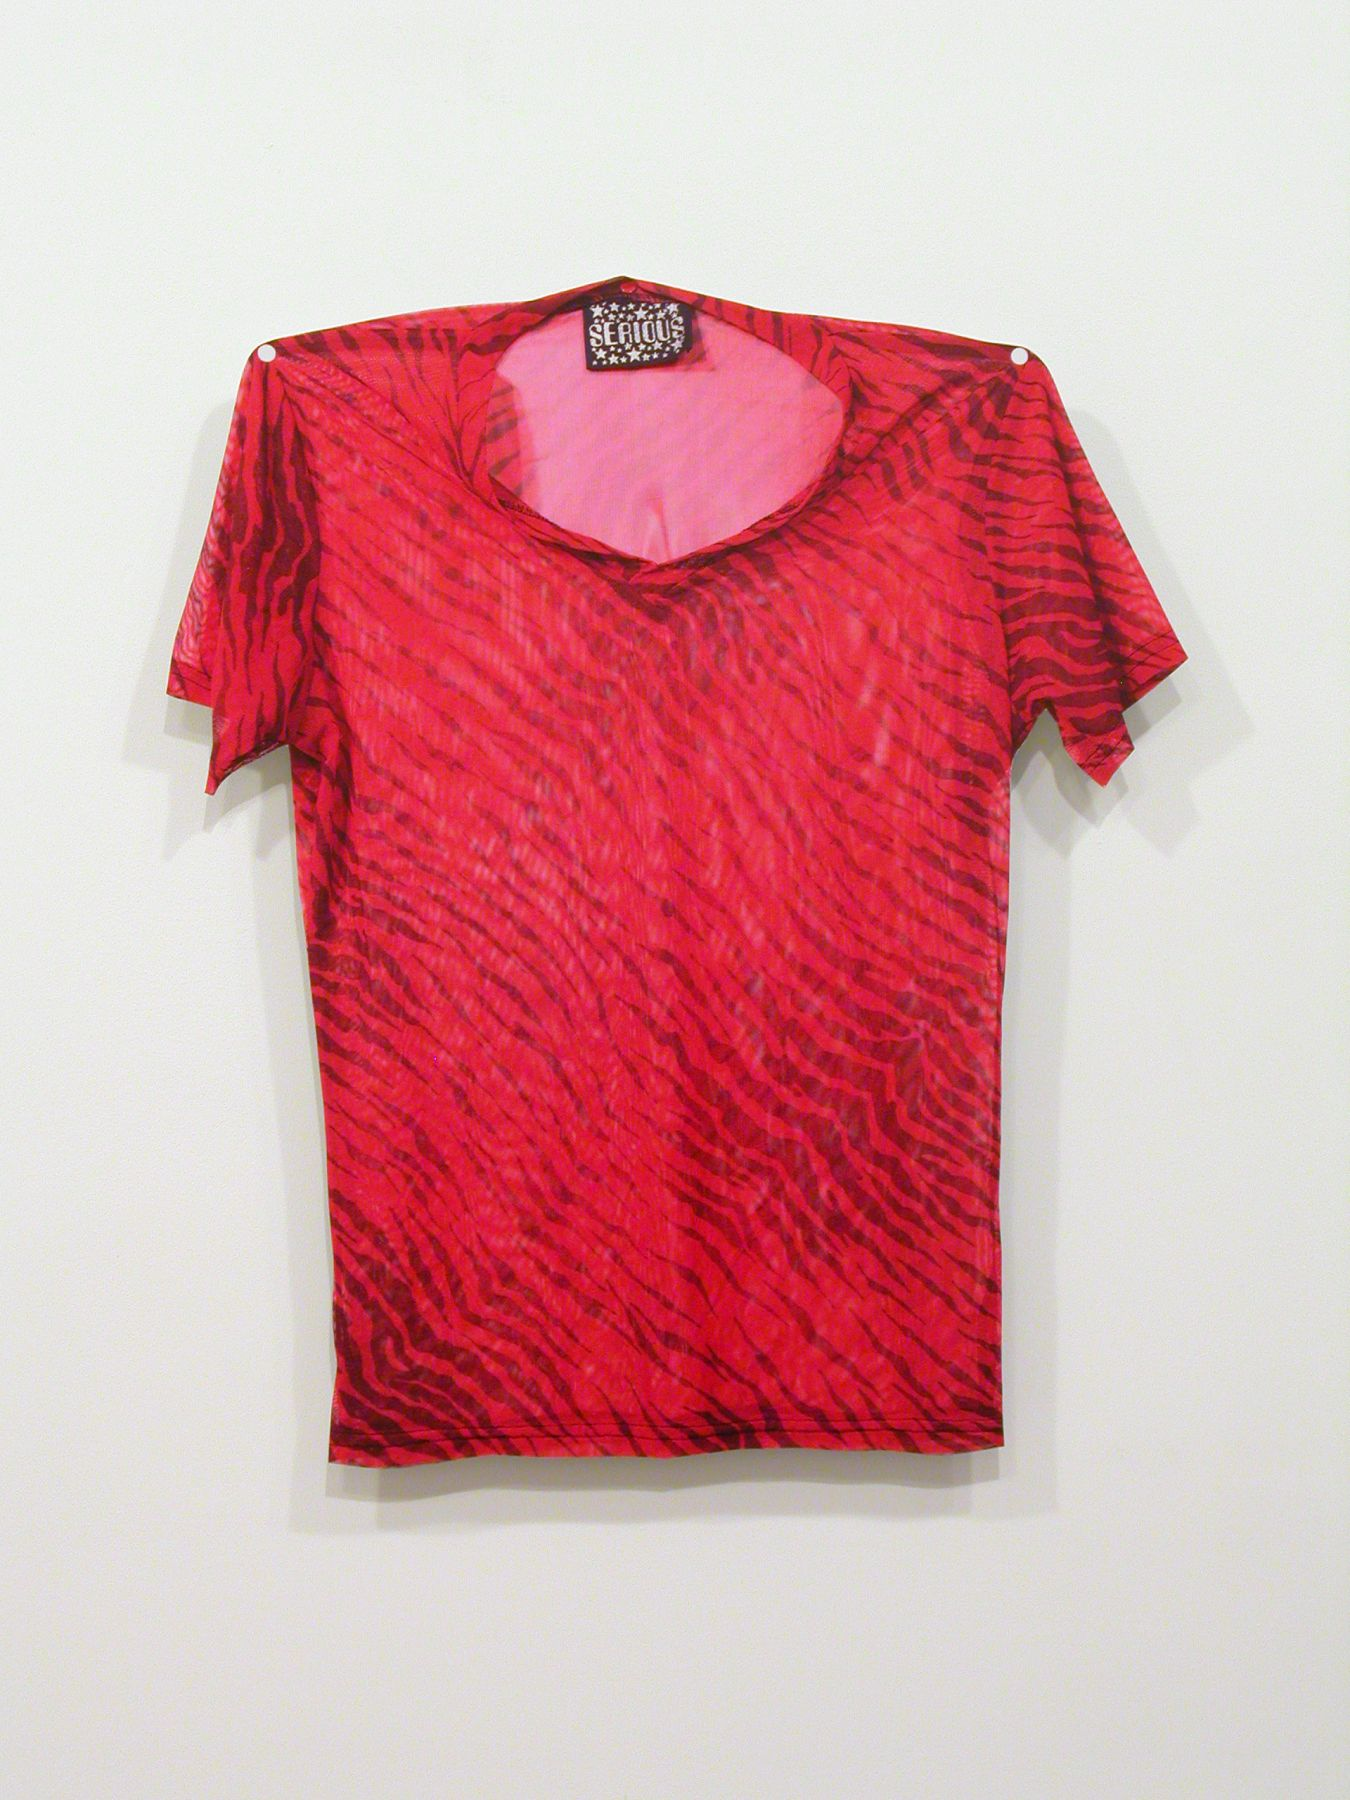 Jim Drain, Untitled (SERIOUS red animal print t-shirt), 2007, C-print, Mounted on Aluminum, 26 1/2 x 23 x 1 inches